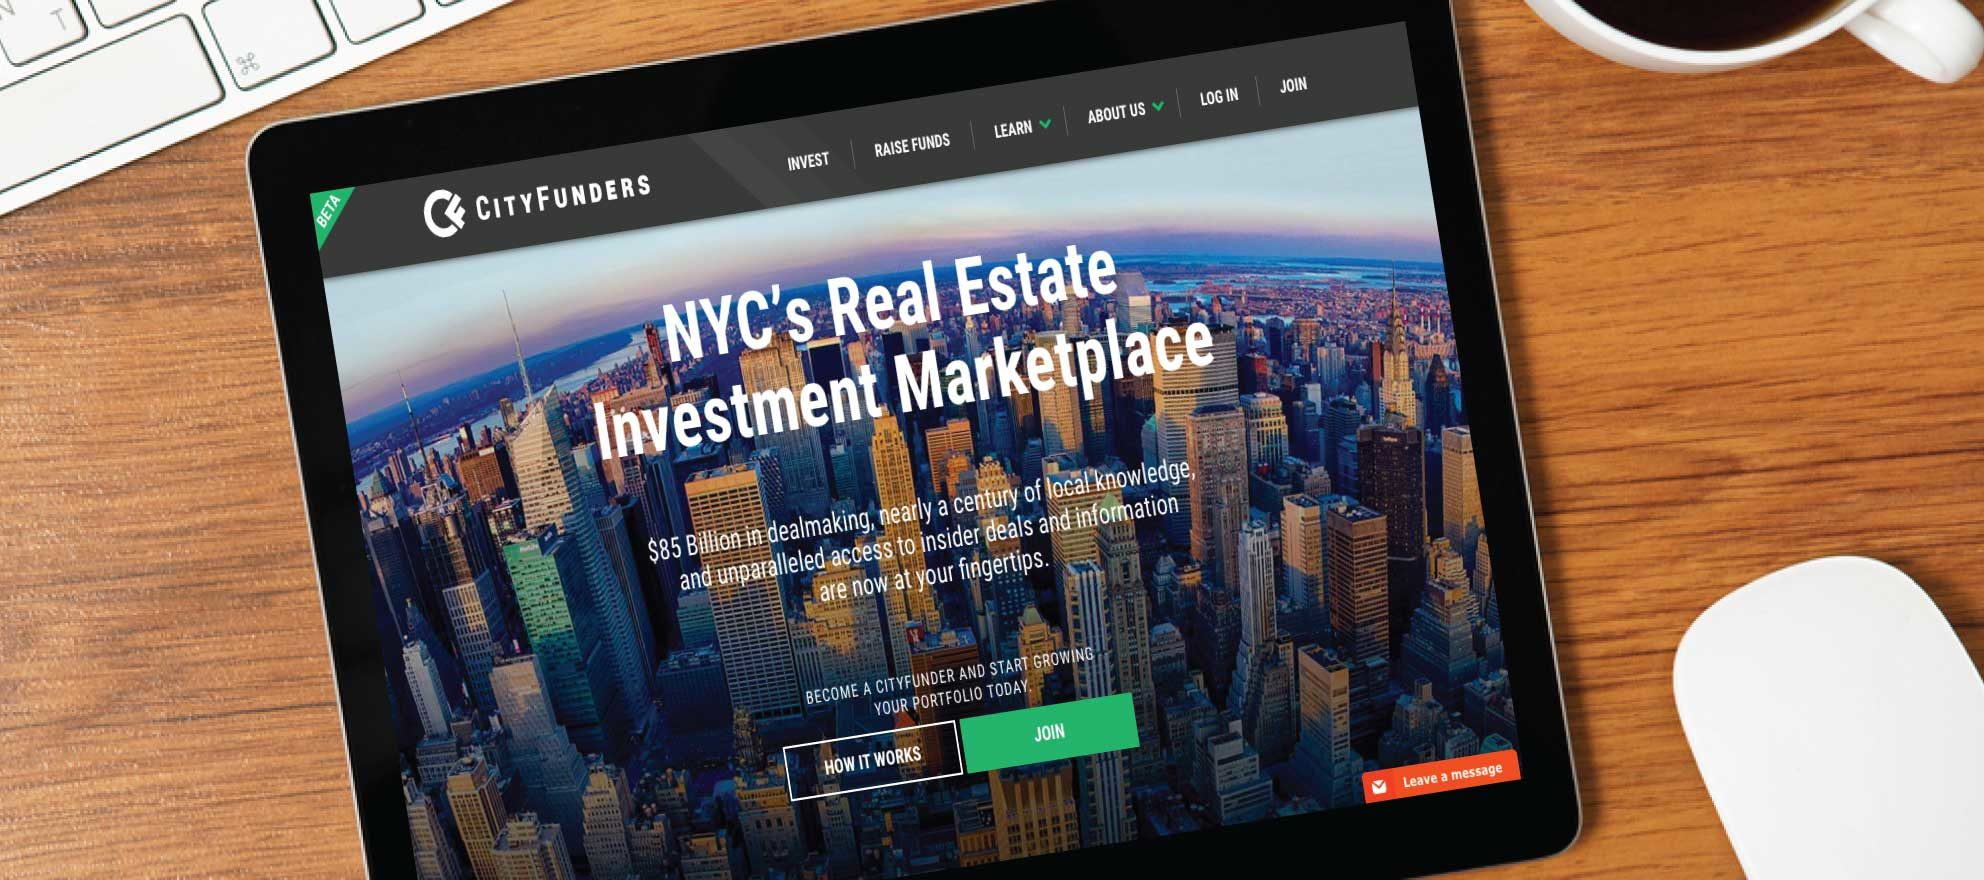 Crowdsourcing platform for New York investors takes bite out of Big Apple's complex real estate deals